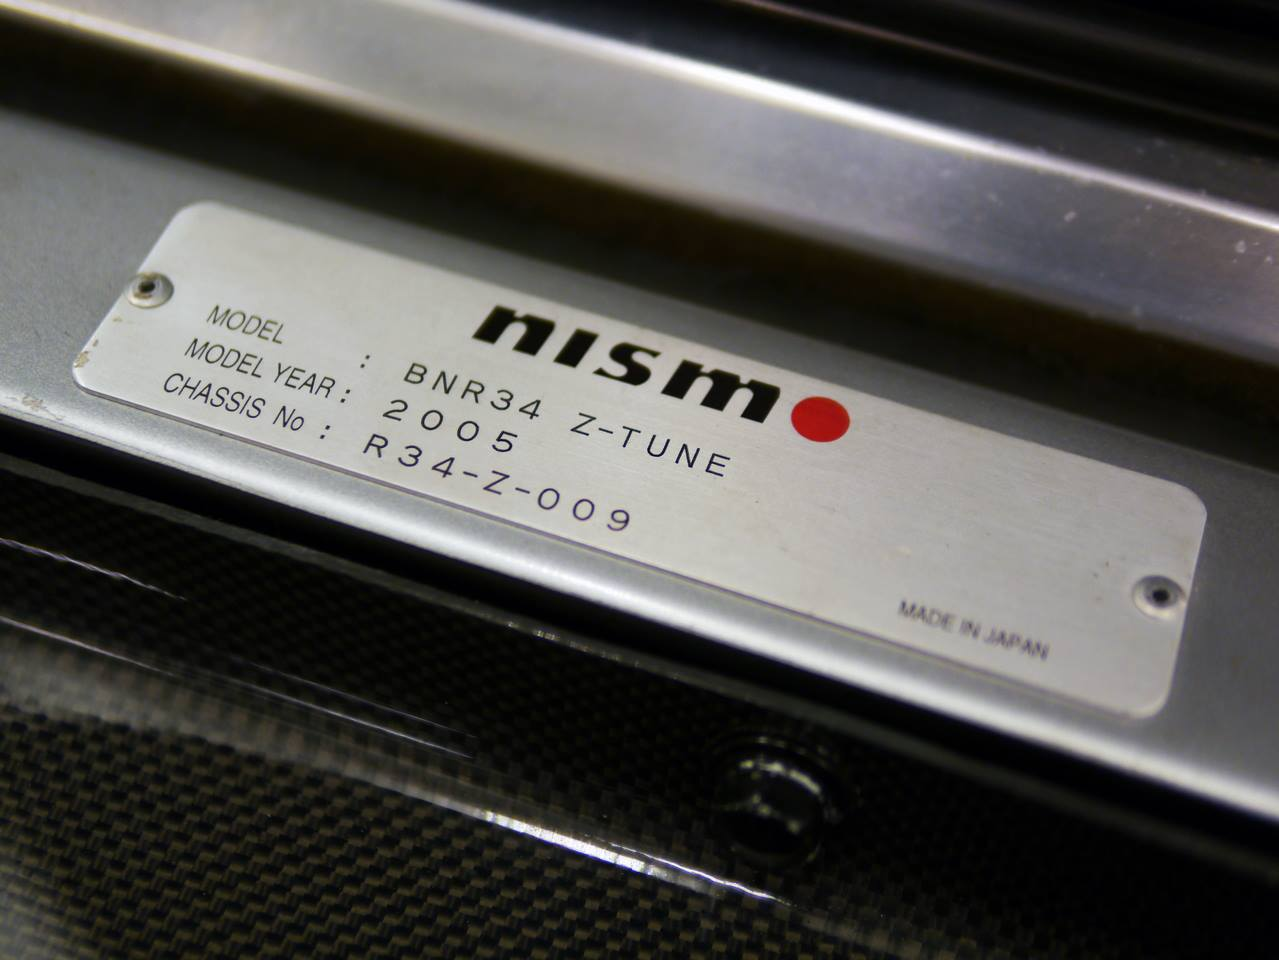 Exceptionally Rare Nissan Skyline GT-R Nismo Z-Tune Will